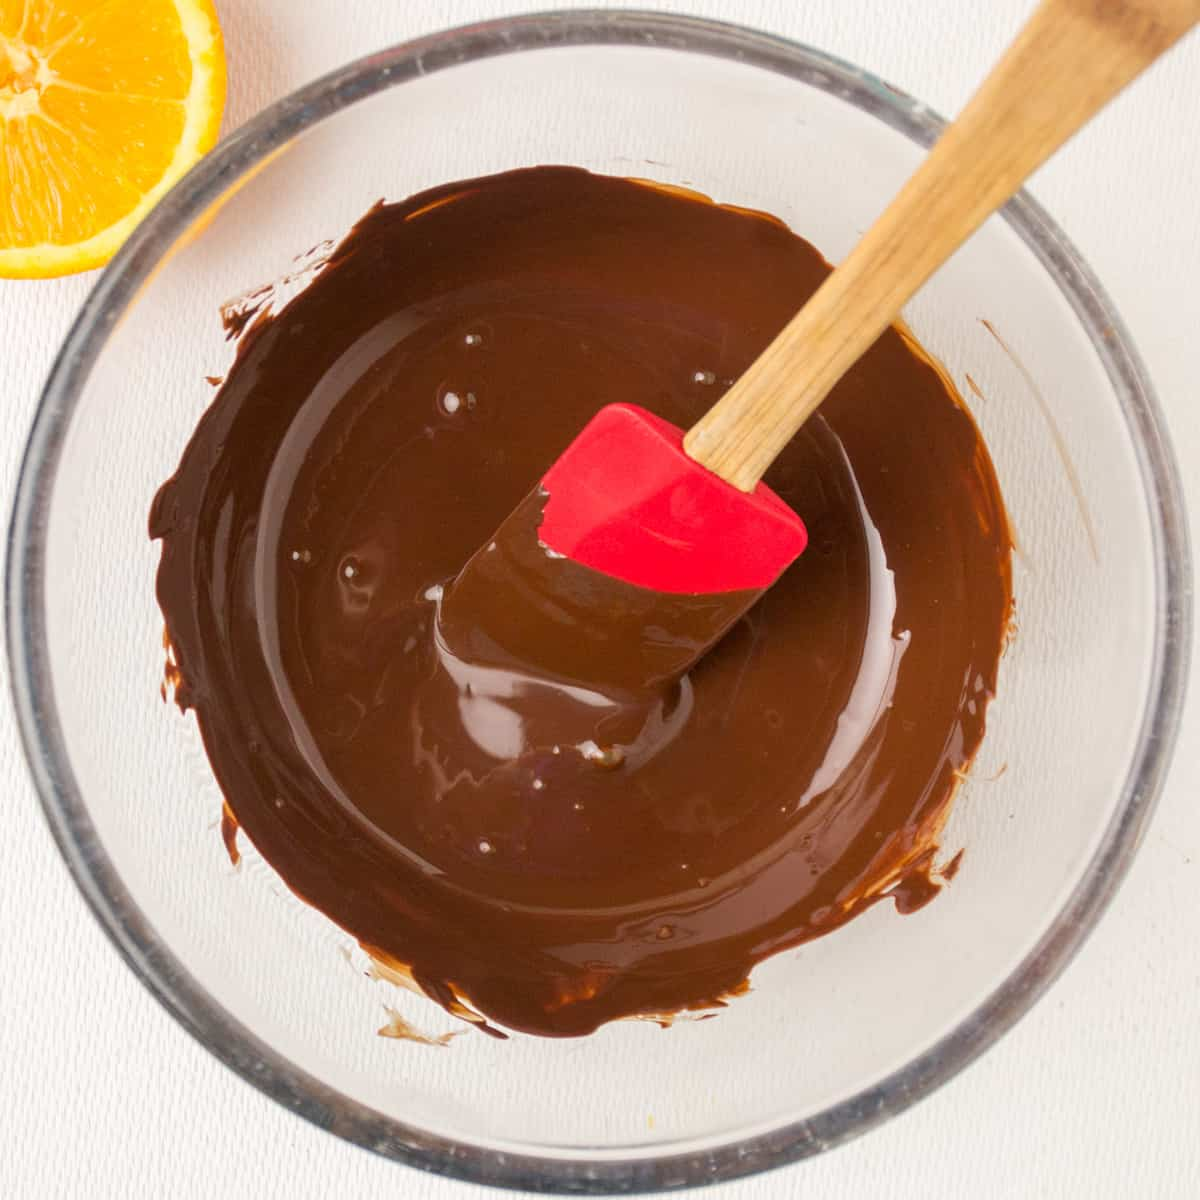 A glass bowl of melted chocolate.